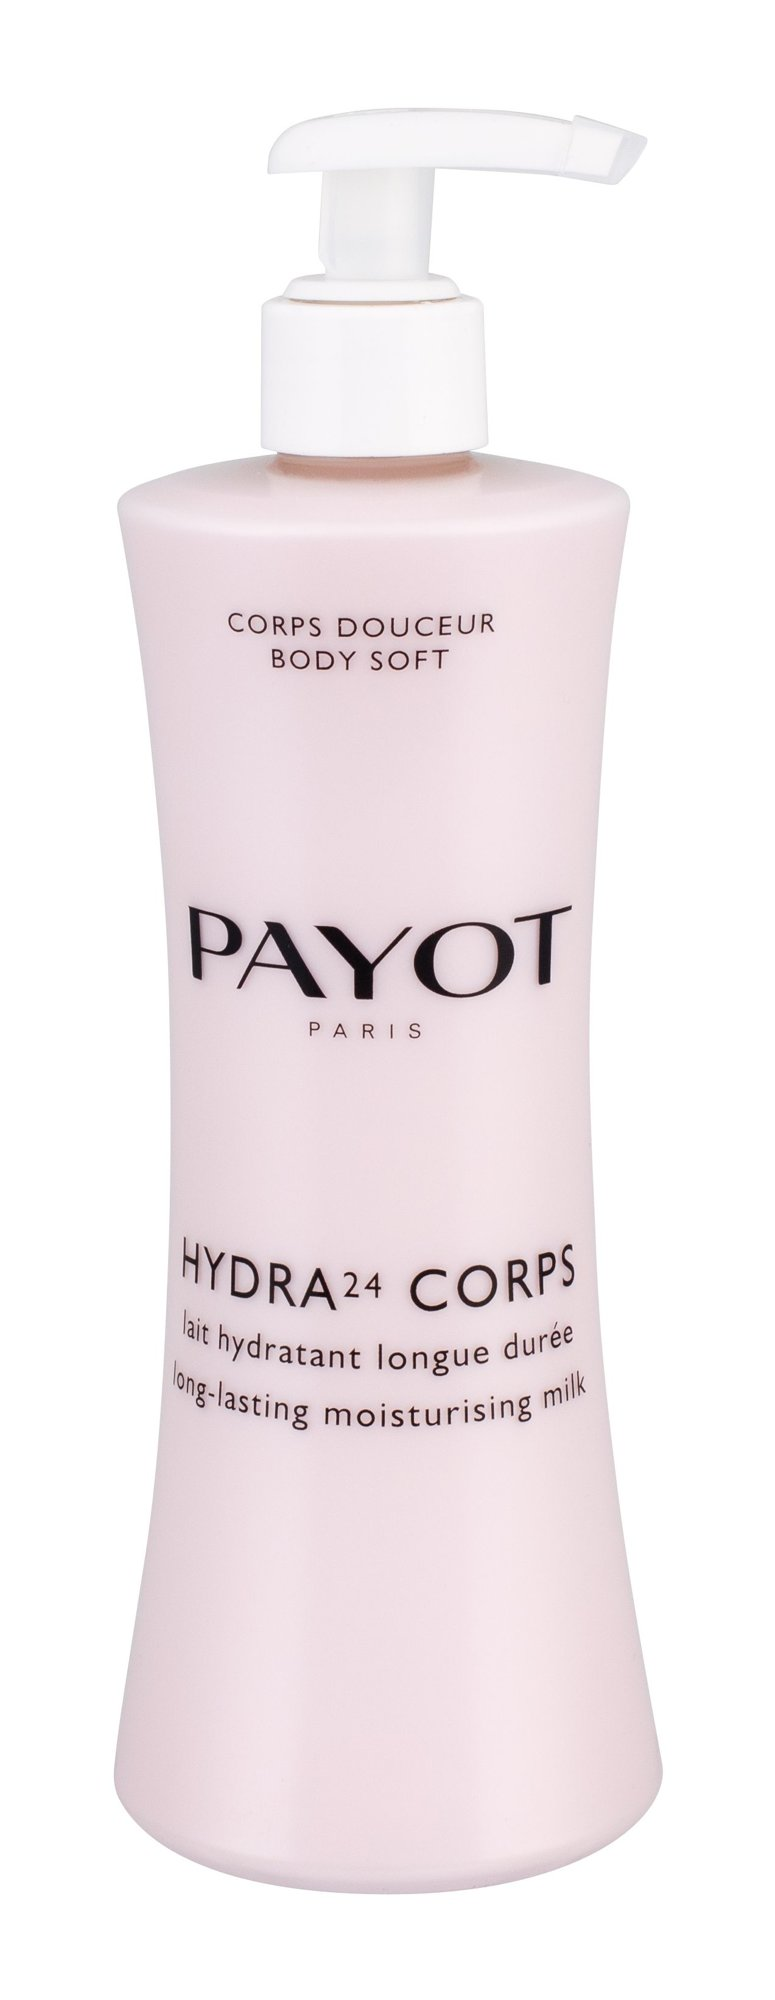 PAYOT Le Corps Body Lotion 400ml  Hydra24 Corps